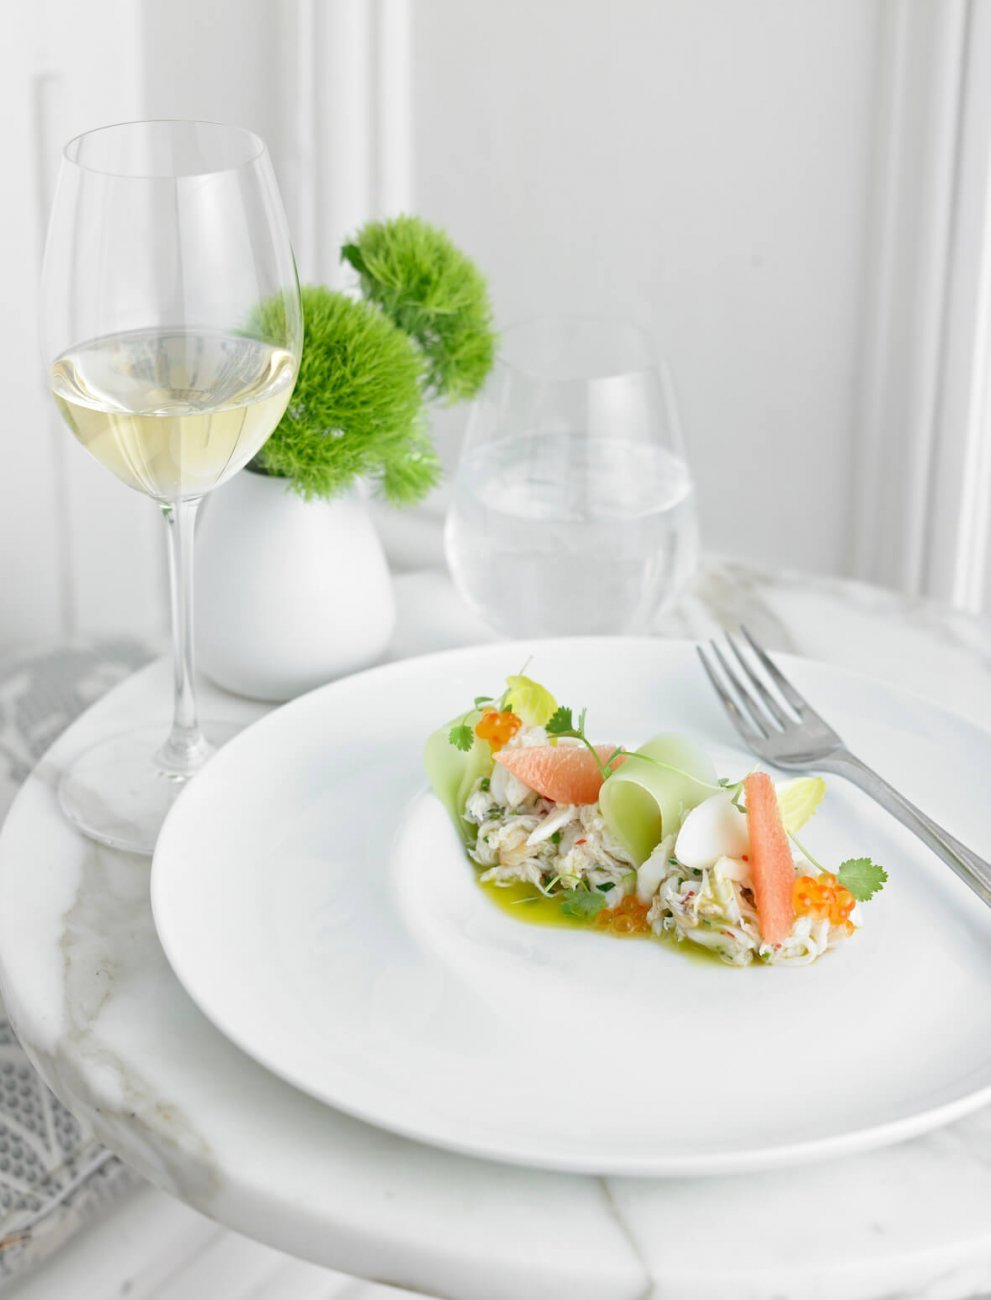 SALAD OF SAND CRAB, HEART OF PALM, CORIANDER AND MINT